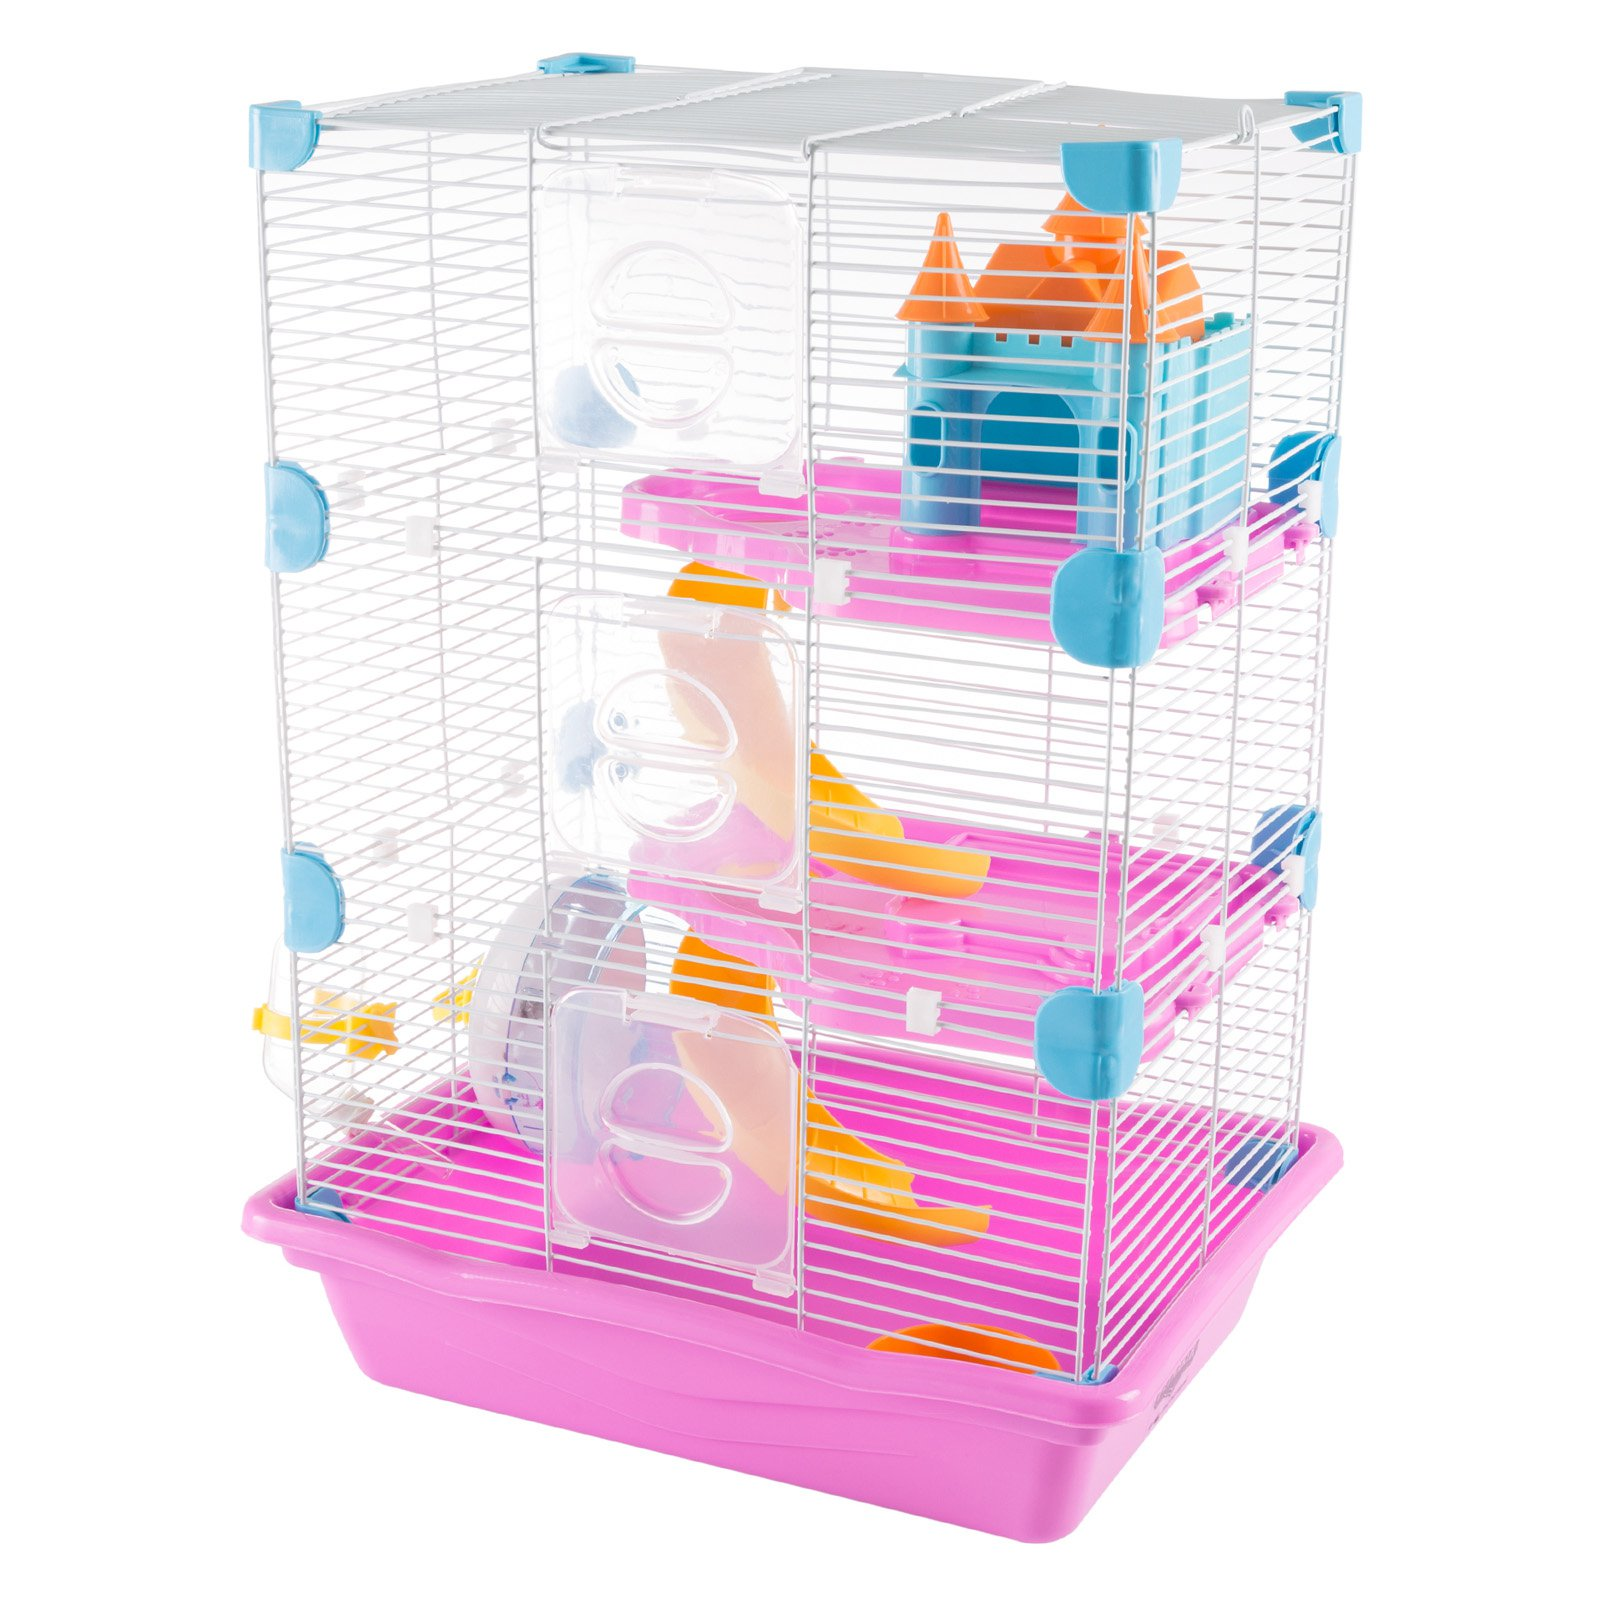 Petmaker 3 Story Hamster Cage Habitat with Attachments and Accessories by Overstock